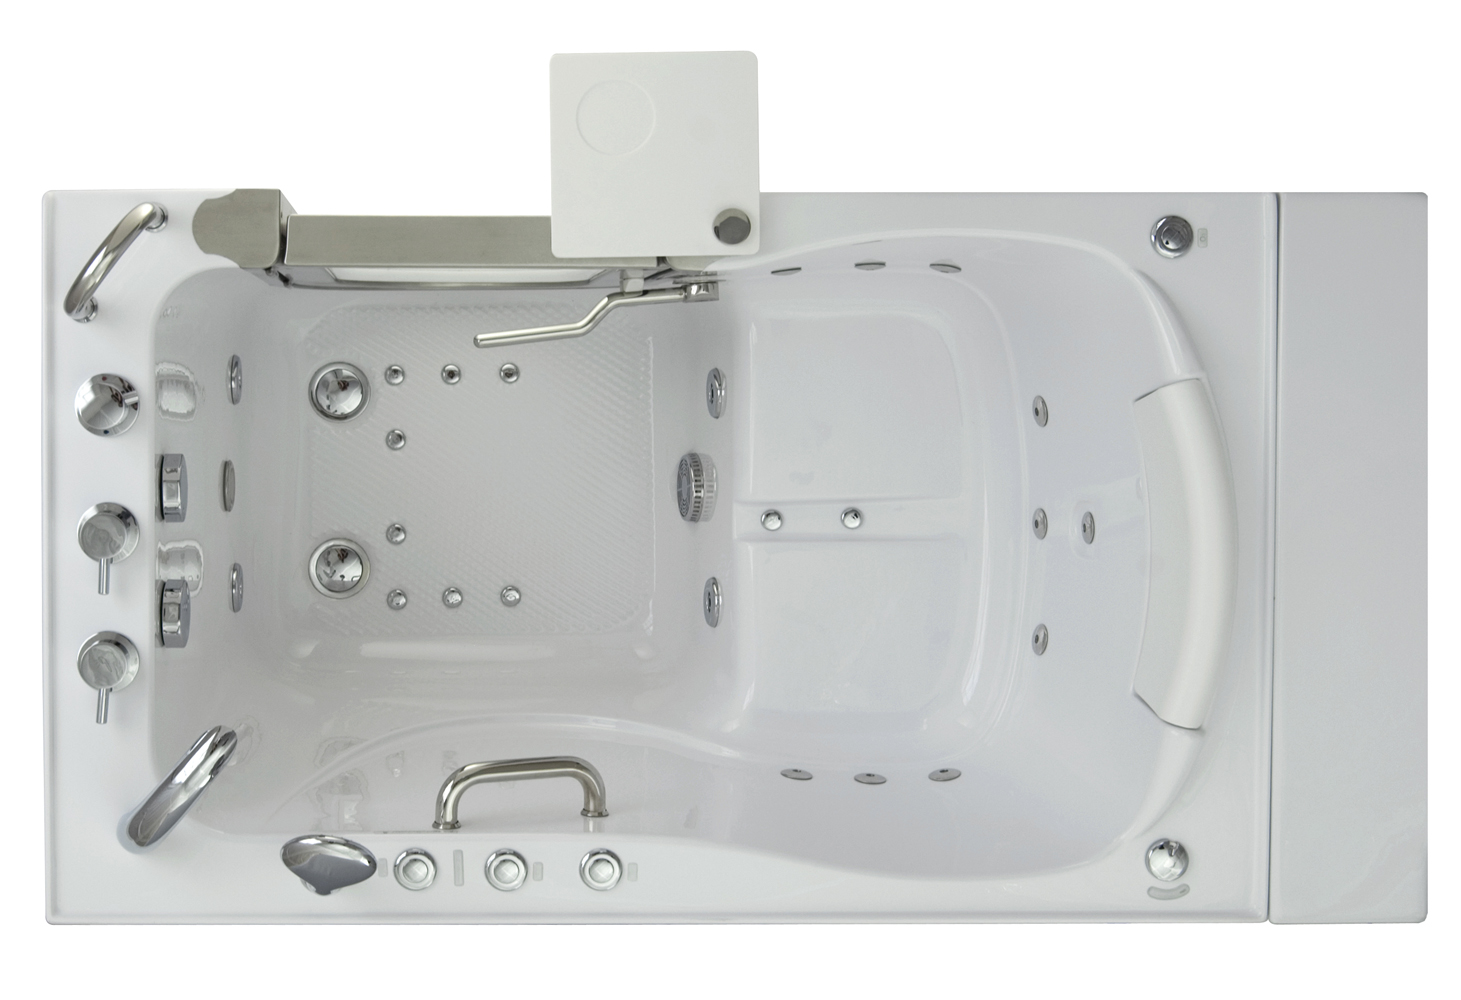 bathtubs jacuzzis in bathwraps and image tubs tub bottom walkin walk